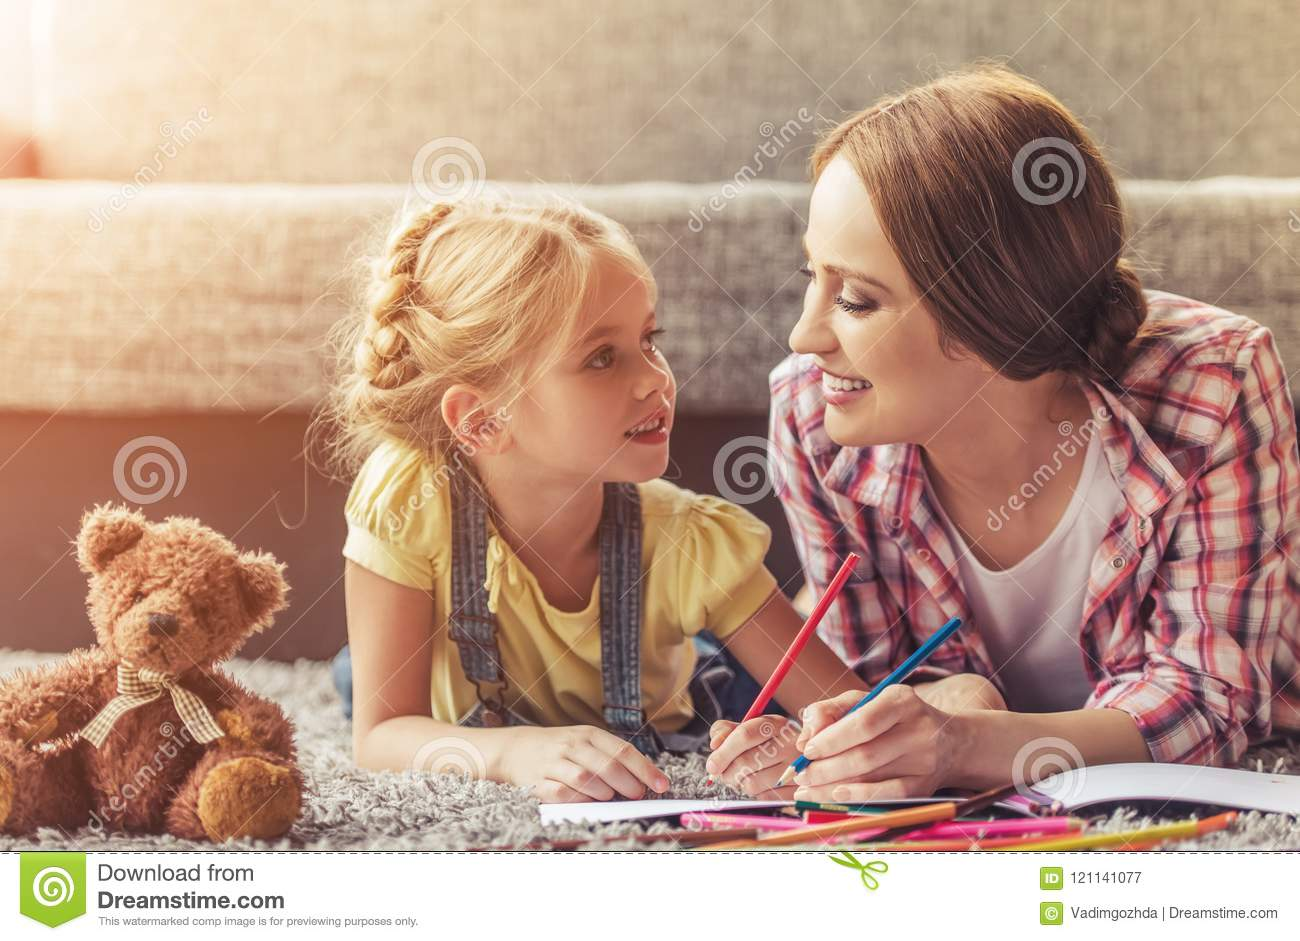 Cute Little Girl and Her Beautiful Mother Drawing.